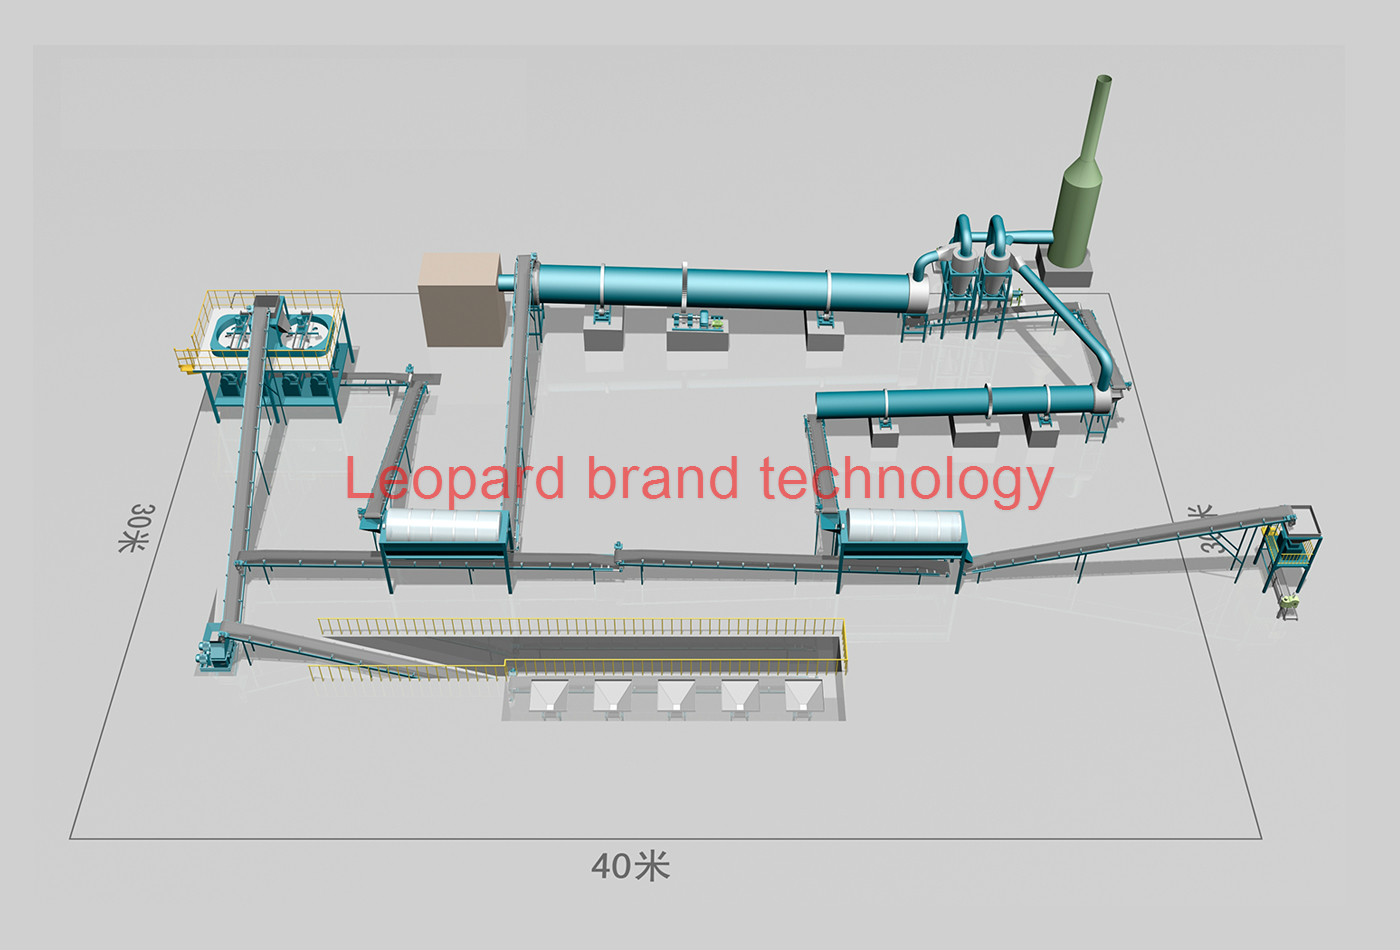 Leopard branded GY dry-powder compound fertilizer rolling granulation line